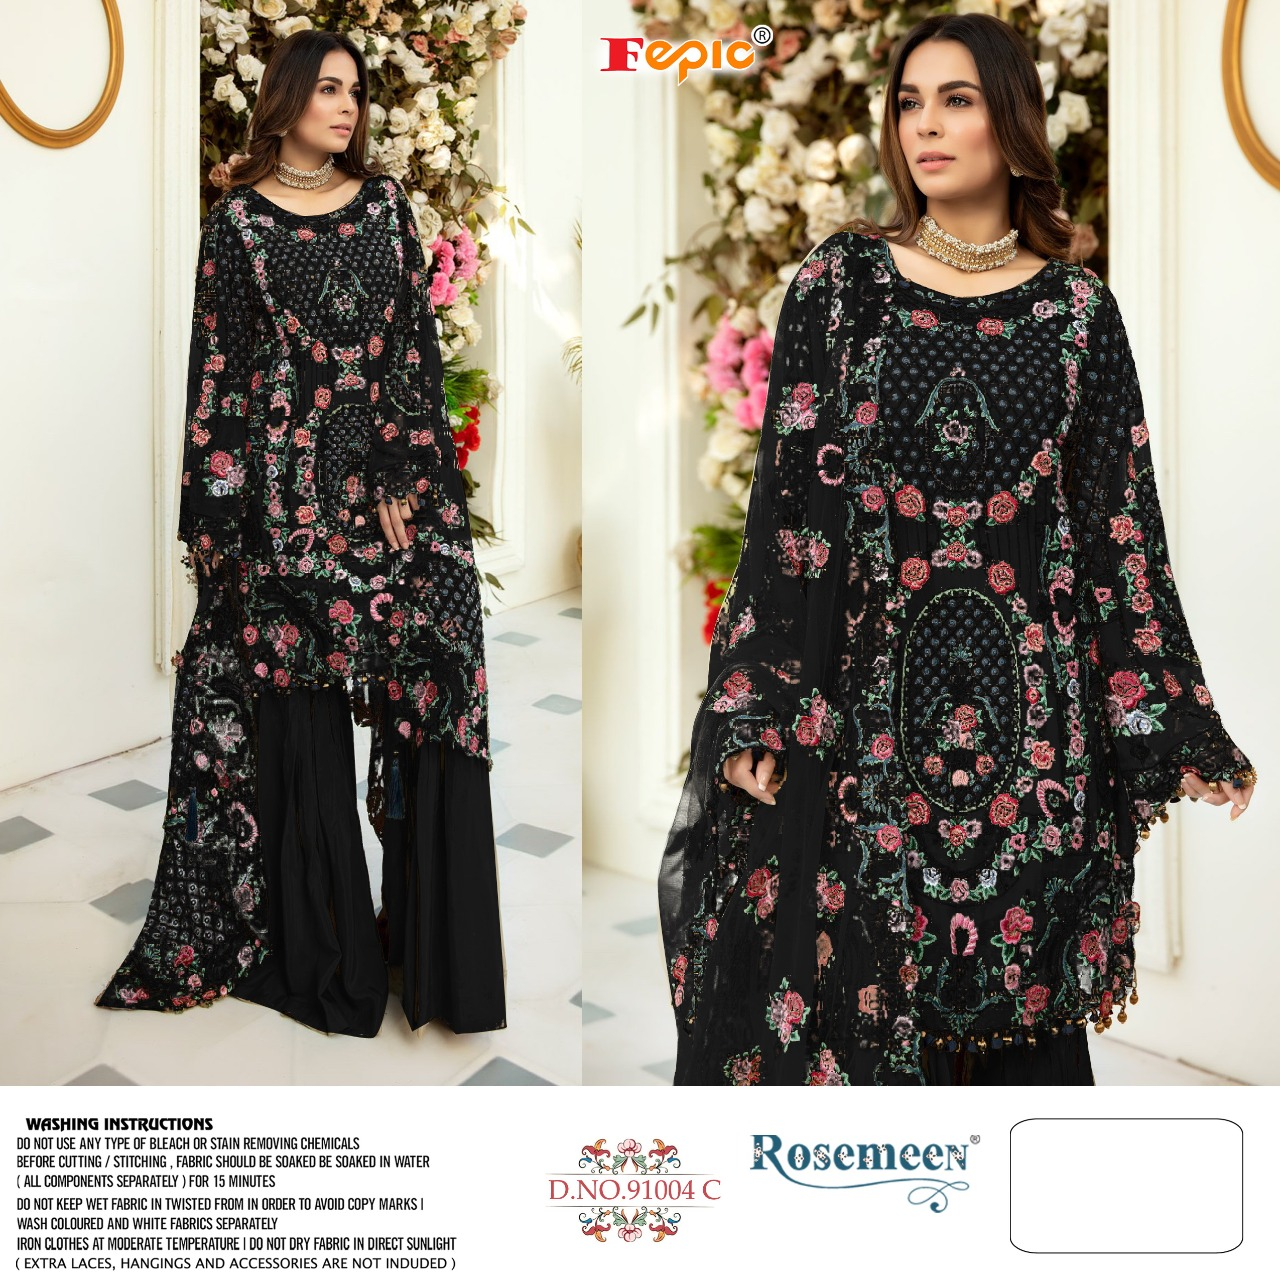 Fepic Rosemeen D No 91004 Colours Net Heavy Embroidery Work And Handwork Suits In Singles